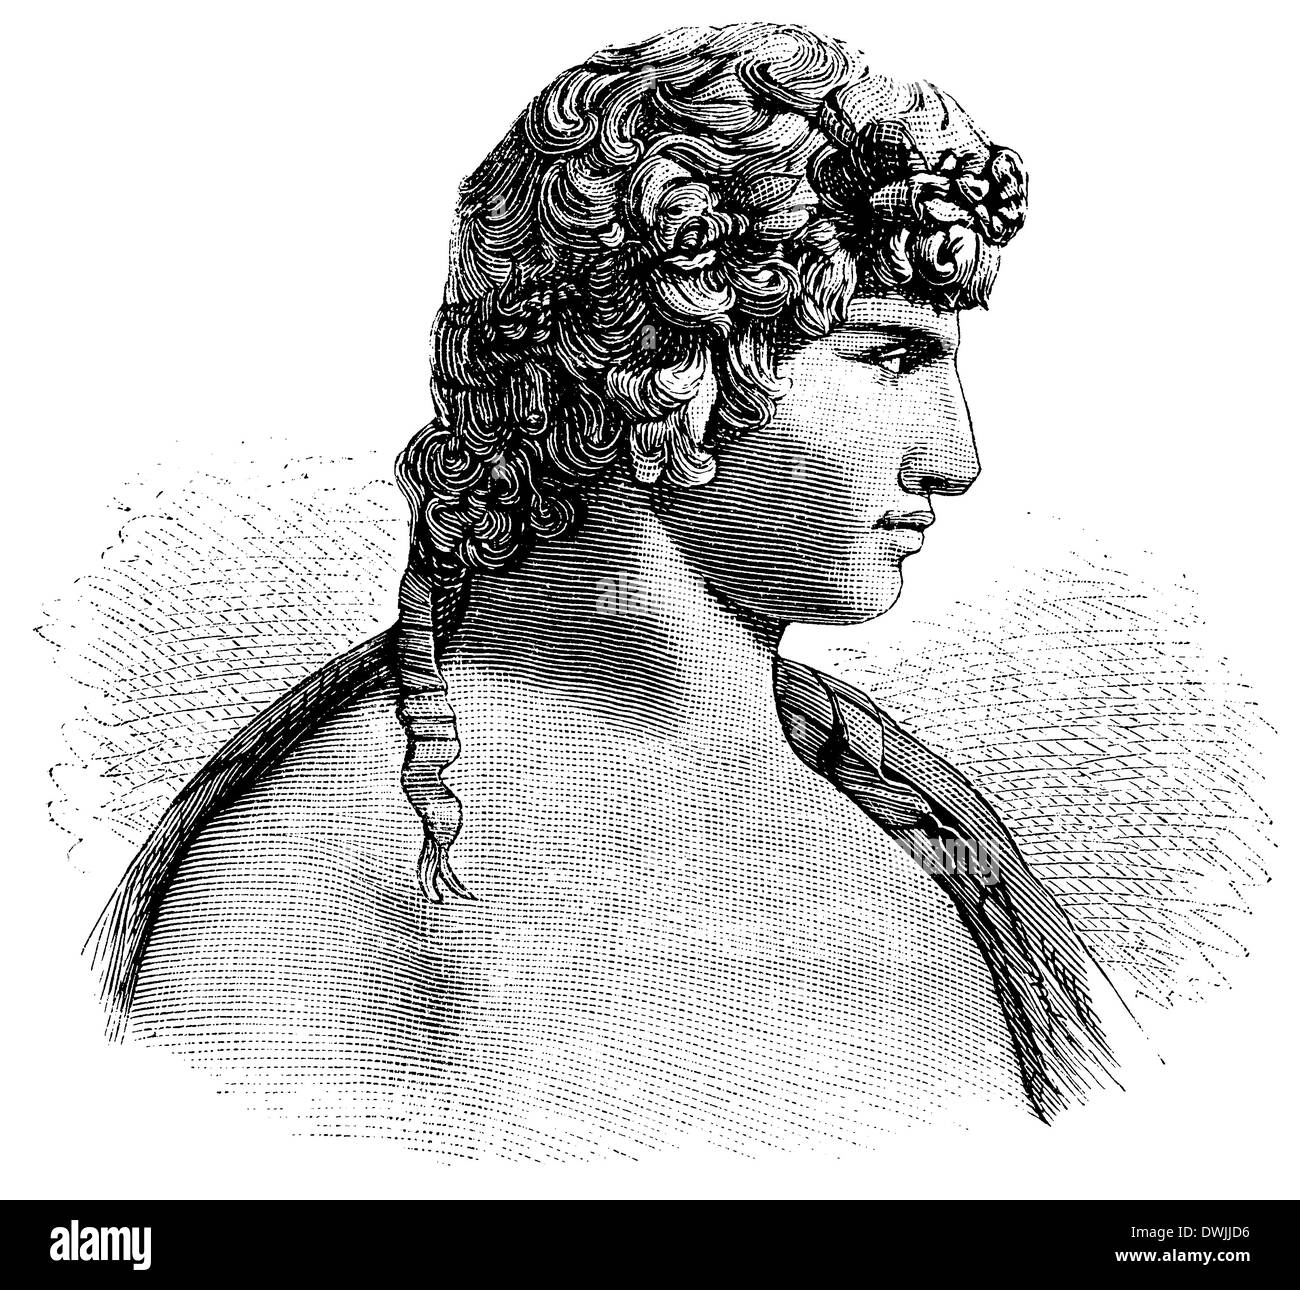 Antinous, Antinoos (born c. November 27,[1] 111, died October 30, 130), member of the entourage of the Roman Emperor Hadrian and his lover - Stock Image